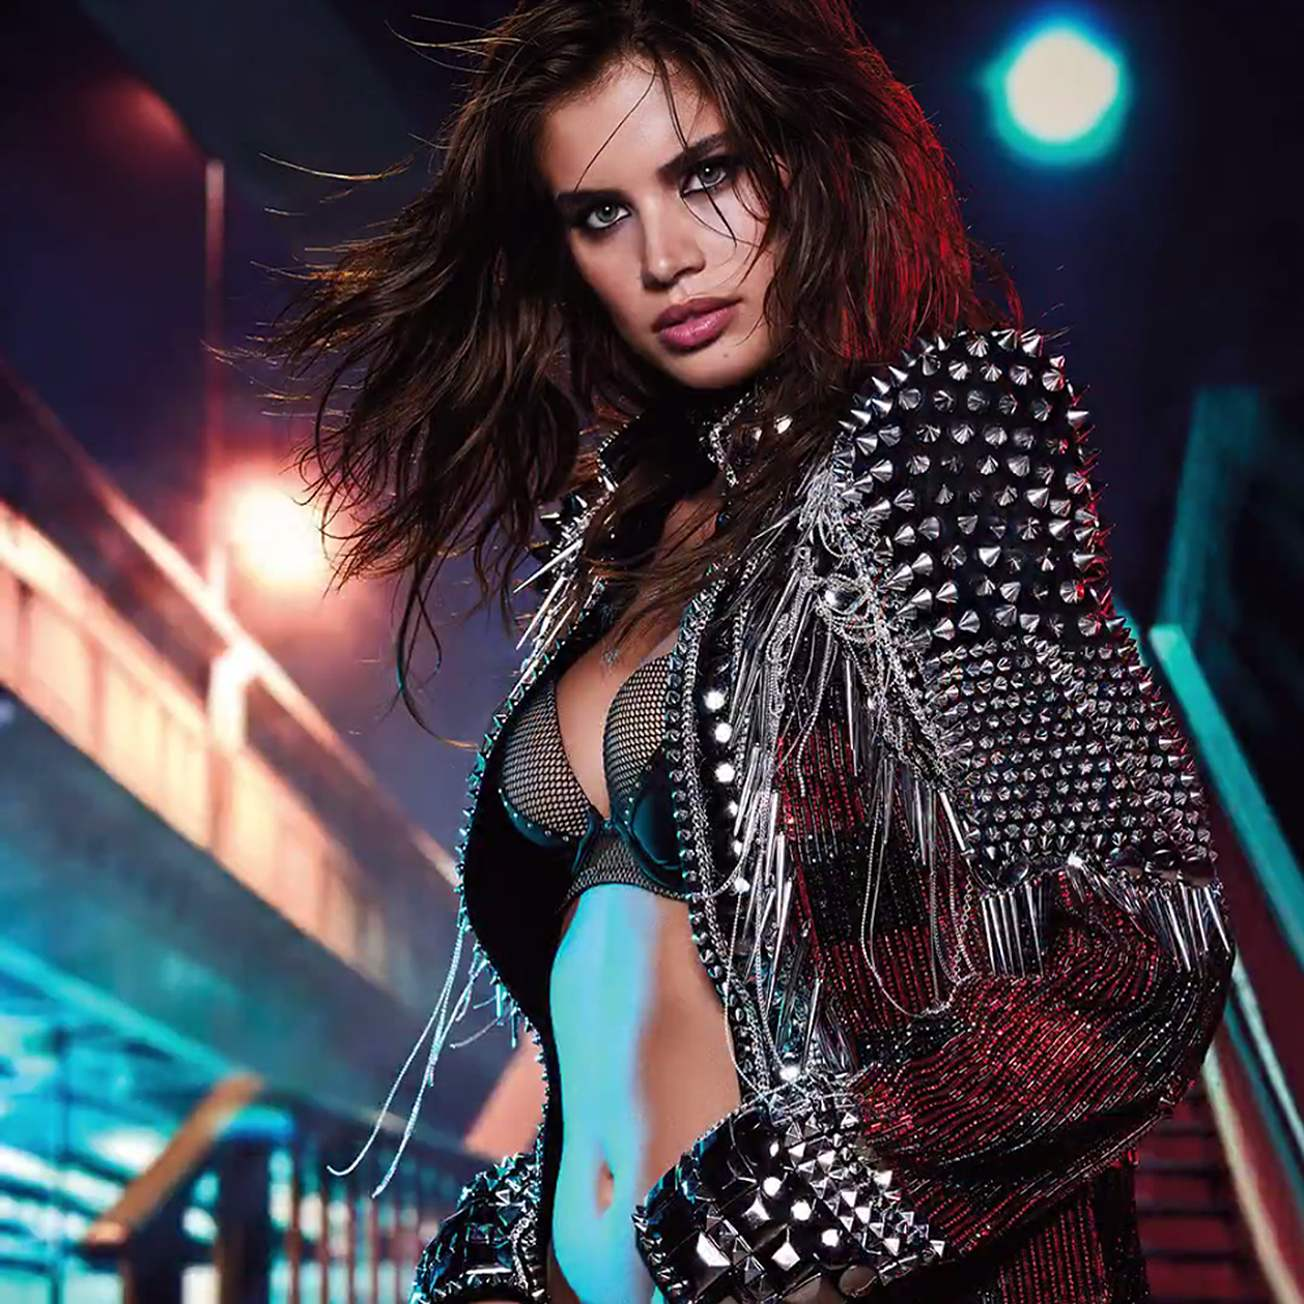 Sara Sampaio flaunts the Victoria's Secret x Balmain Collection